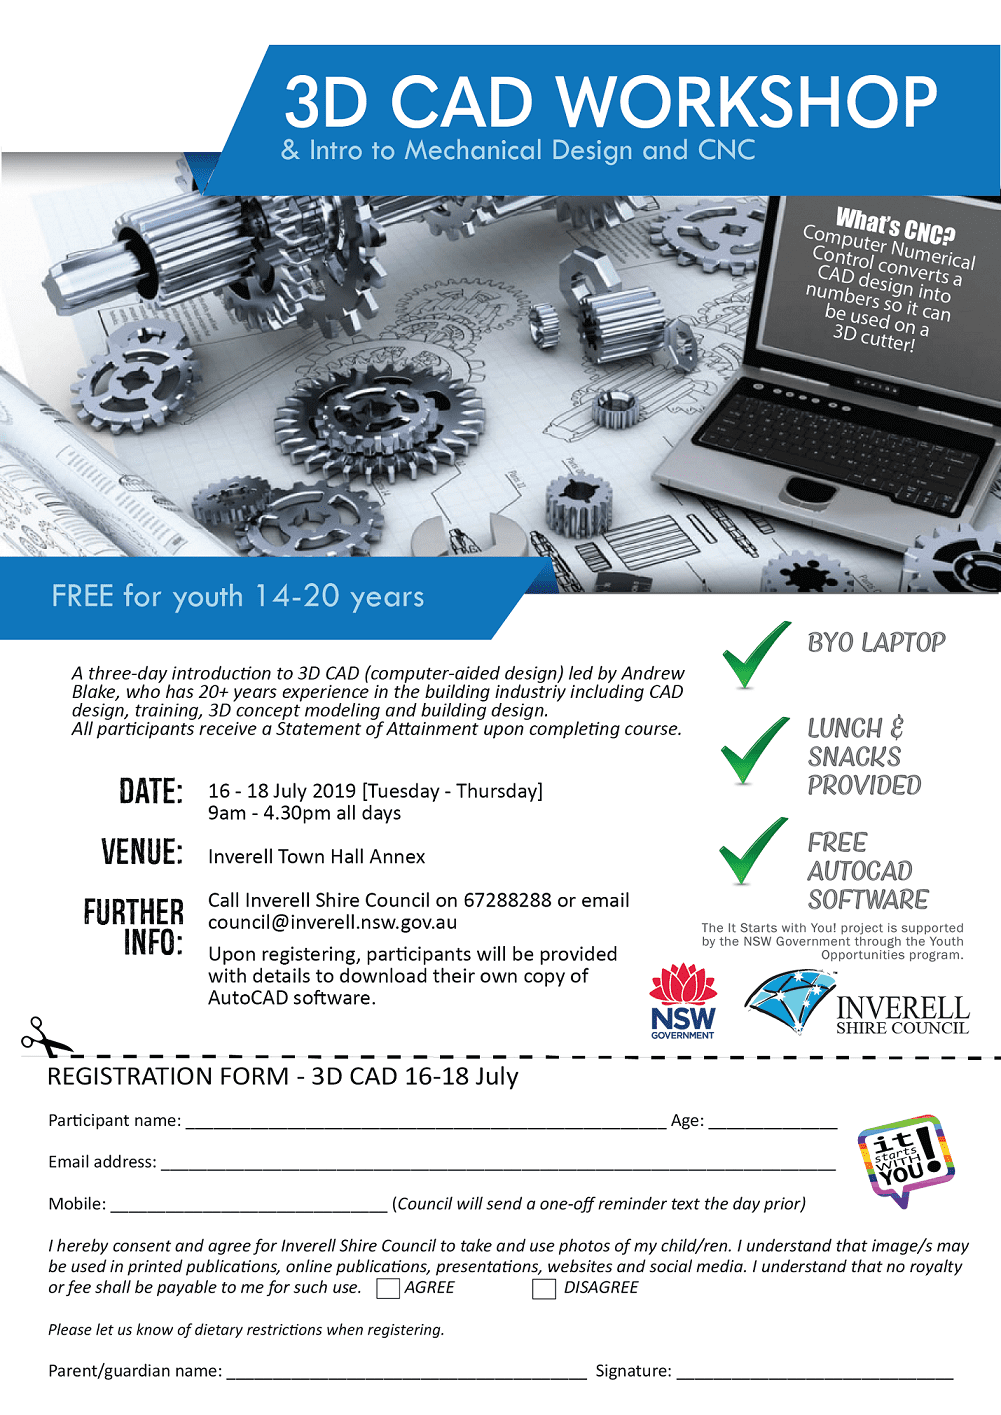 3D CAD Workshop (for Youth) - Inverell Shire CouncilInverell Shire